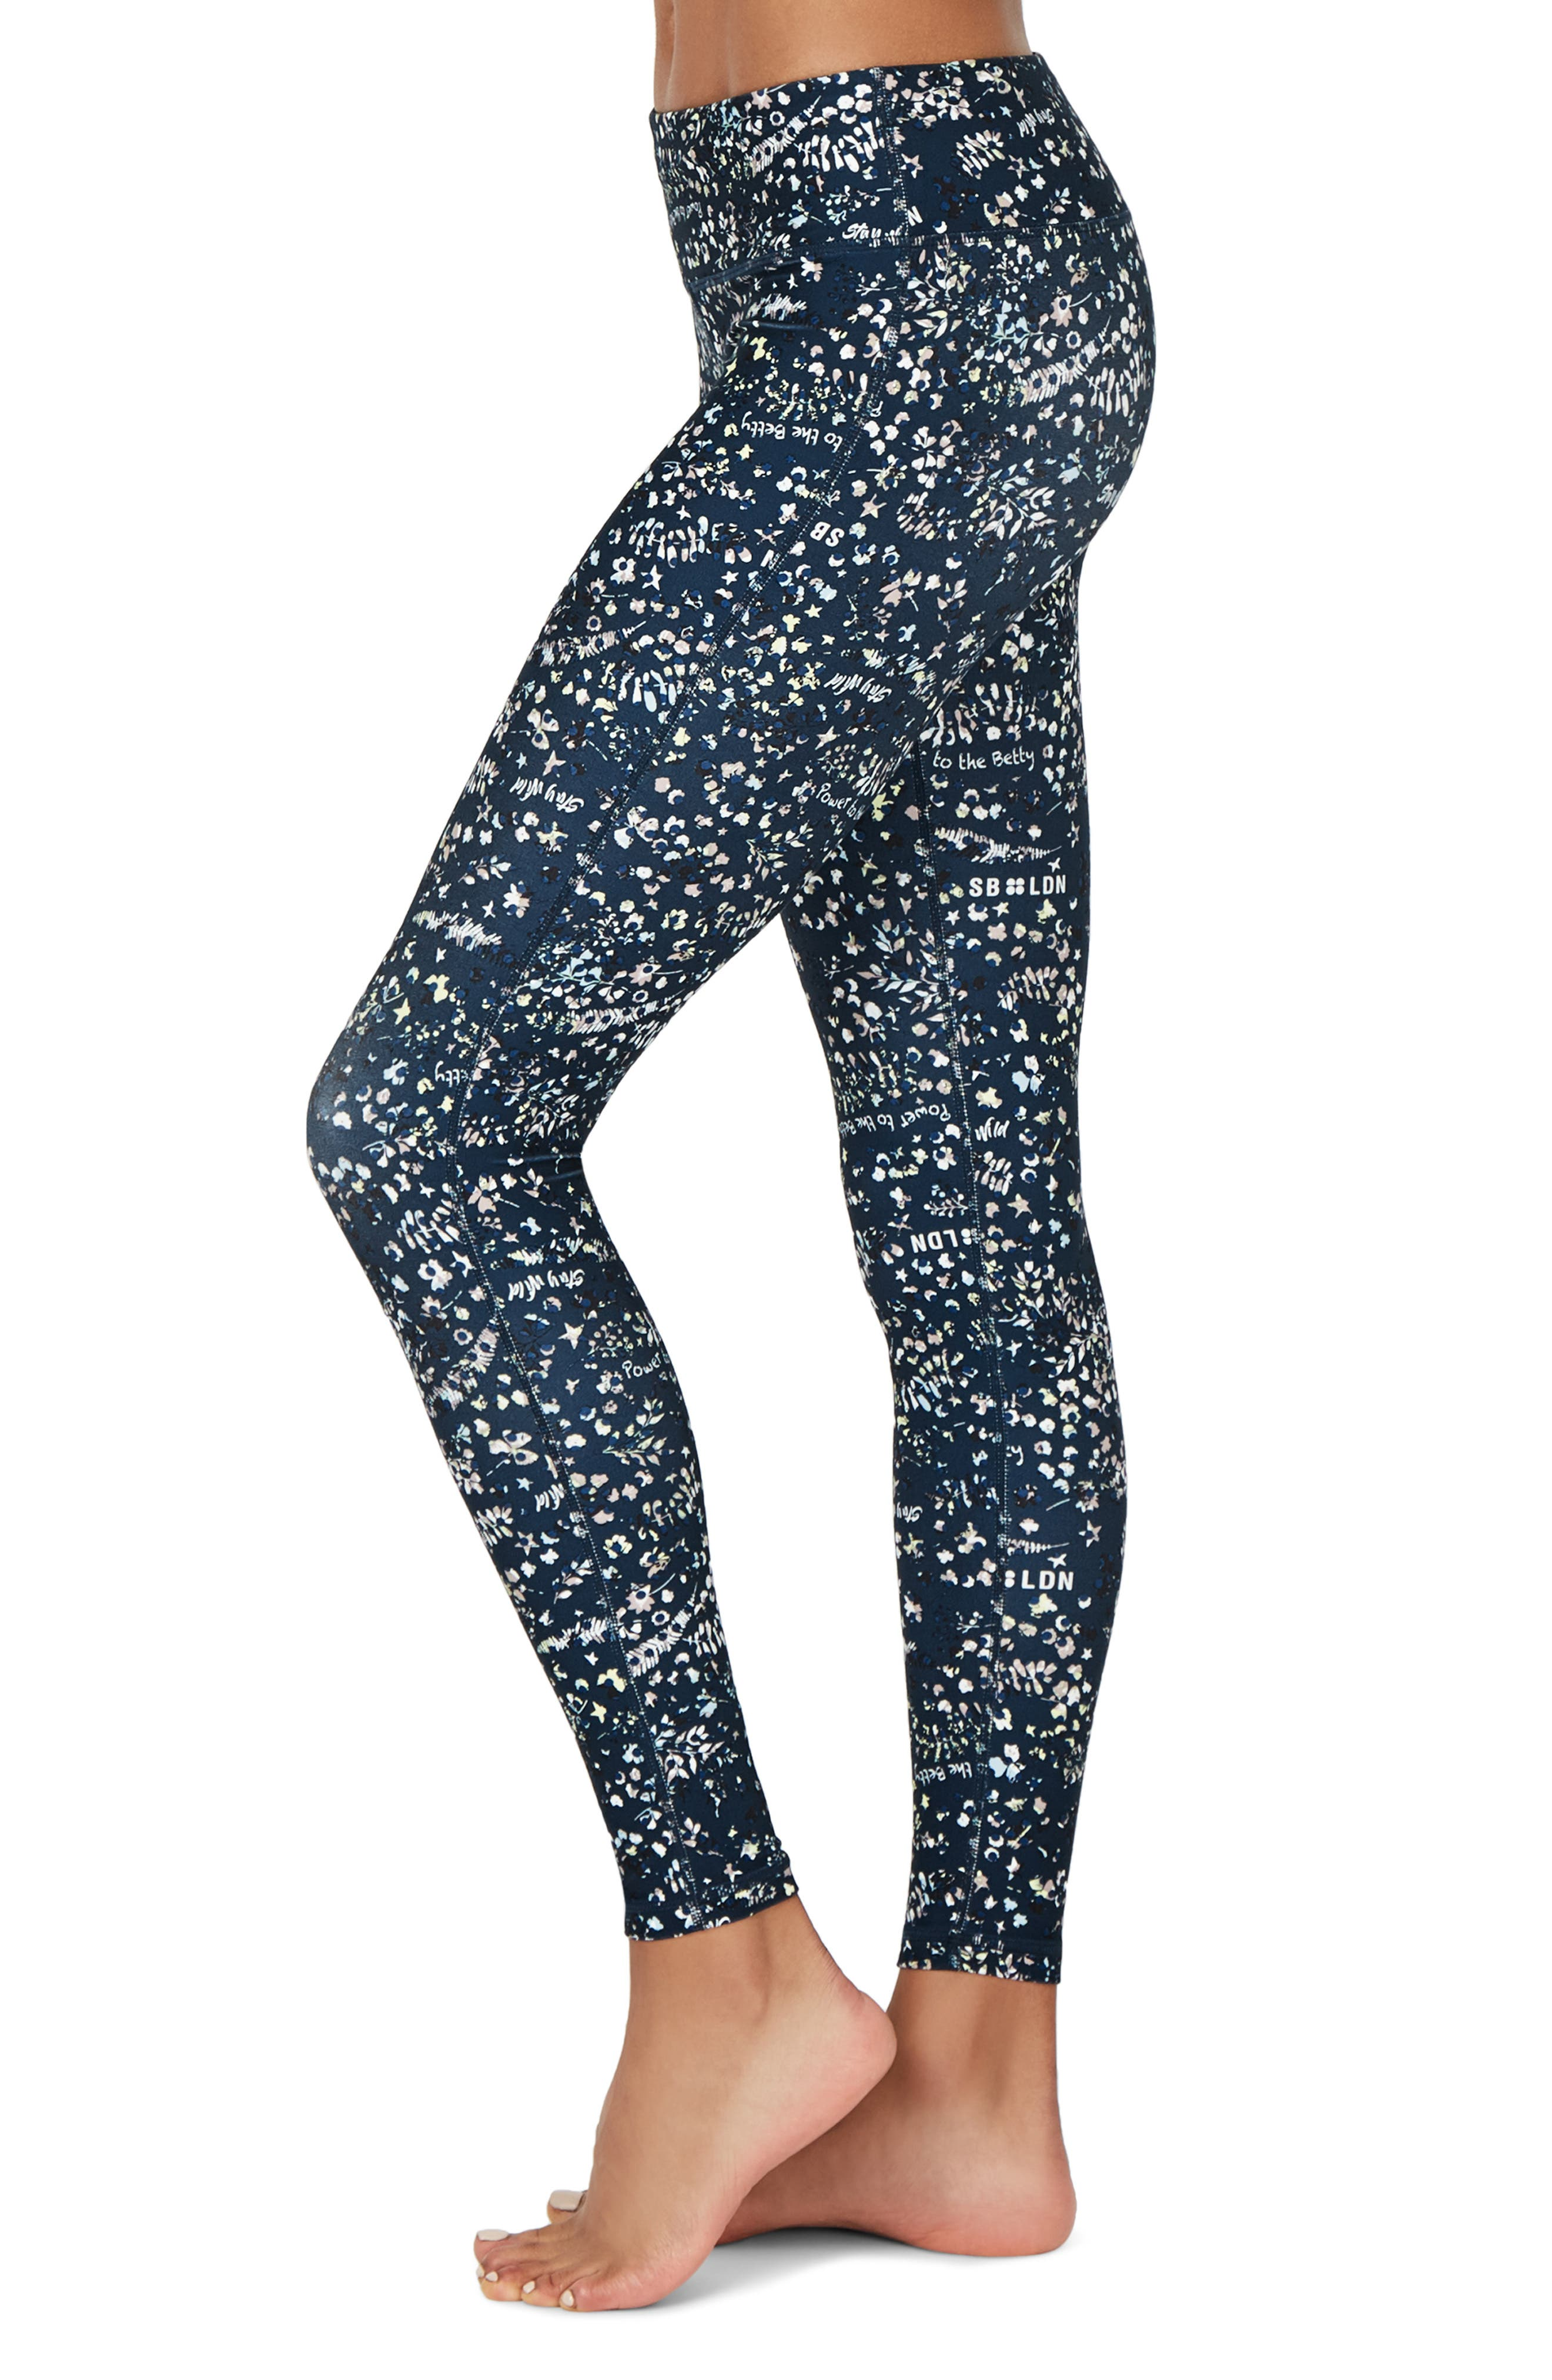 SWEATY BETTY, Contour Leggings, Alternate thumbnail 4, color, BEETLE BLUE STAY WILD PRINT